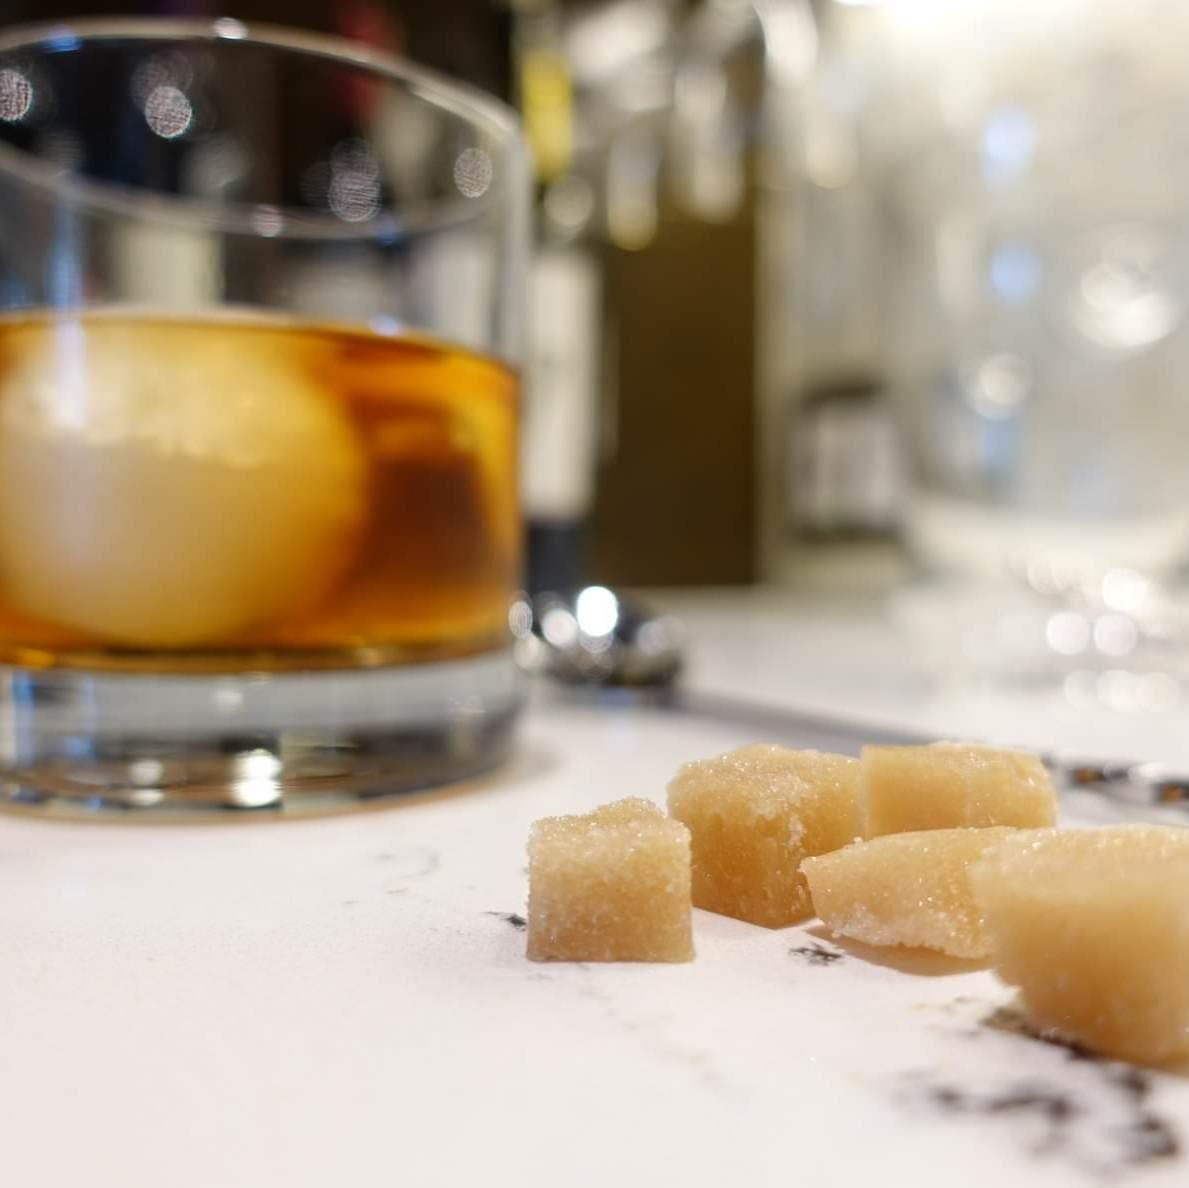 DIY flavored sugar cubes (these aren't the sugar cubes you're looking for)